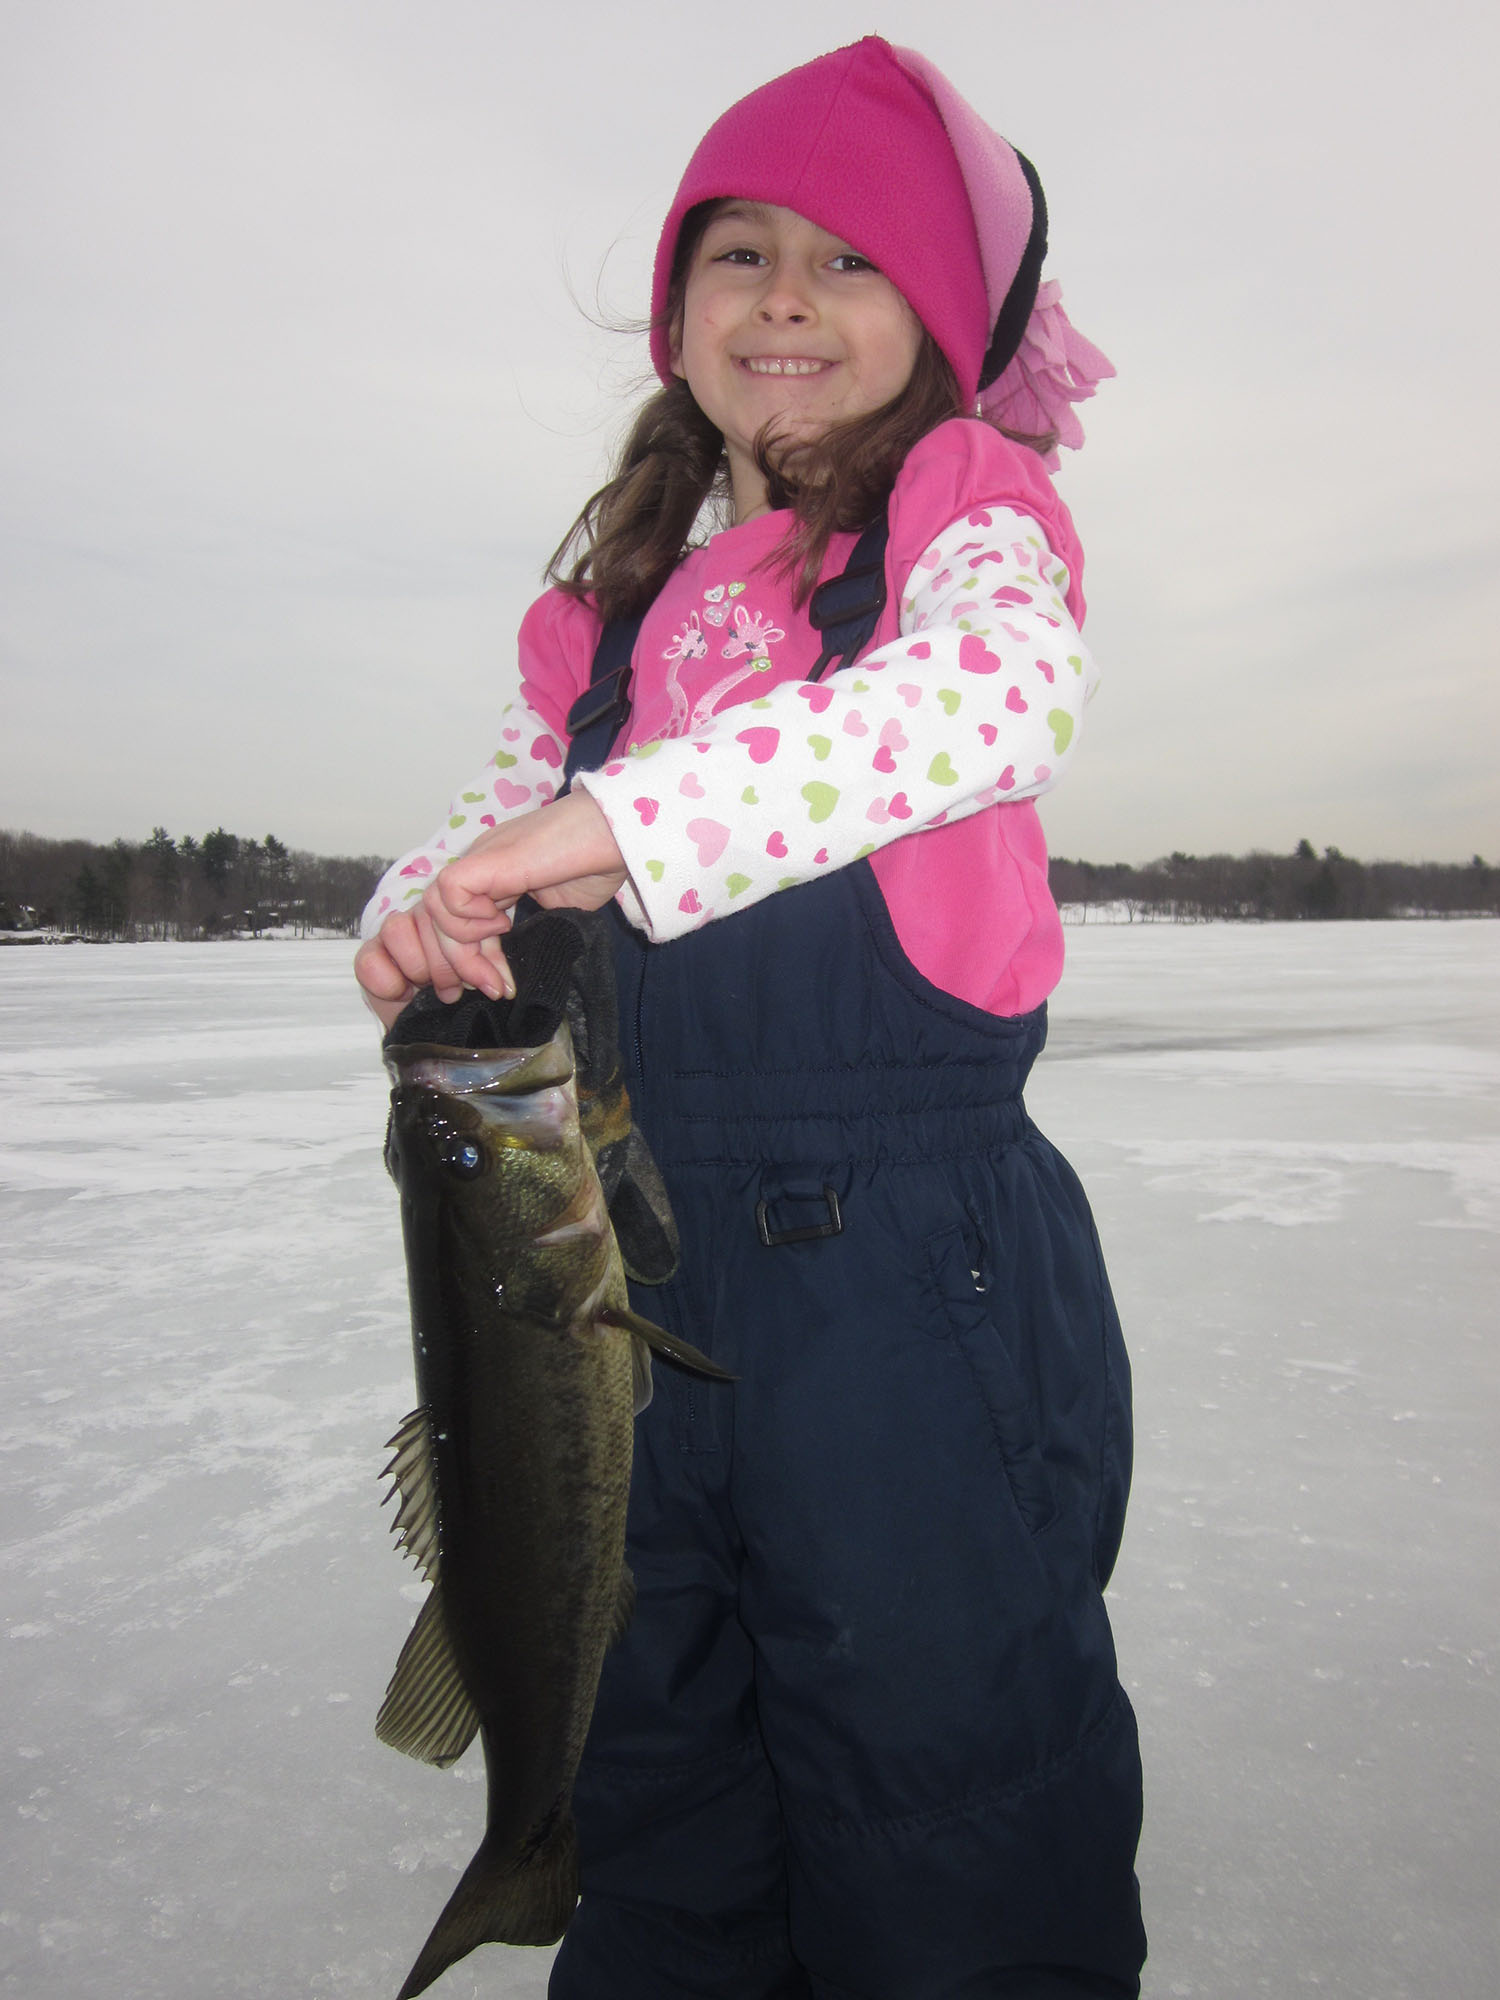 Family ice fishing fundraiser georgetown education for New ice fishing gear 2017